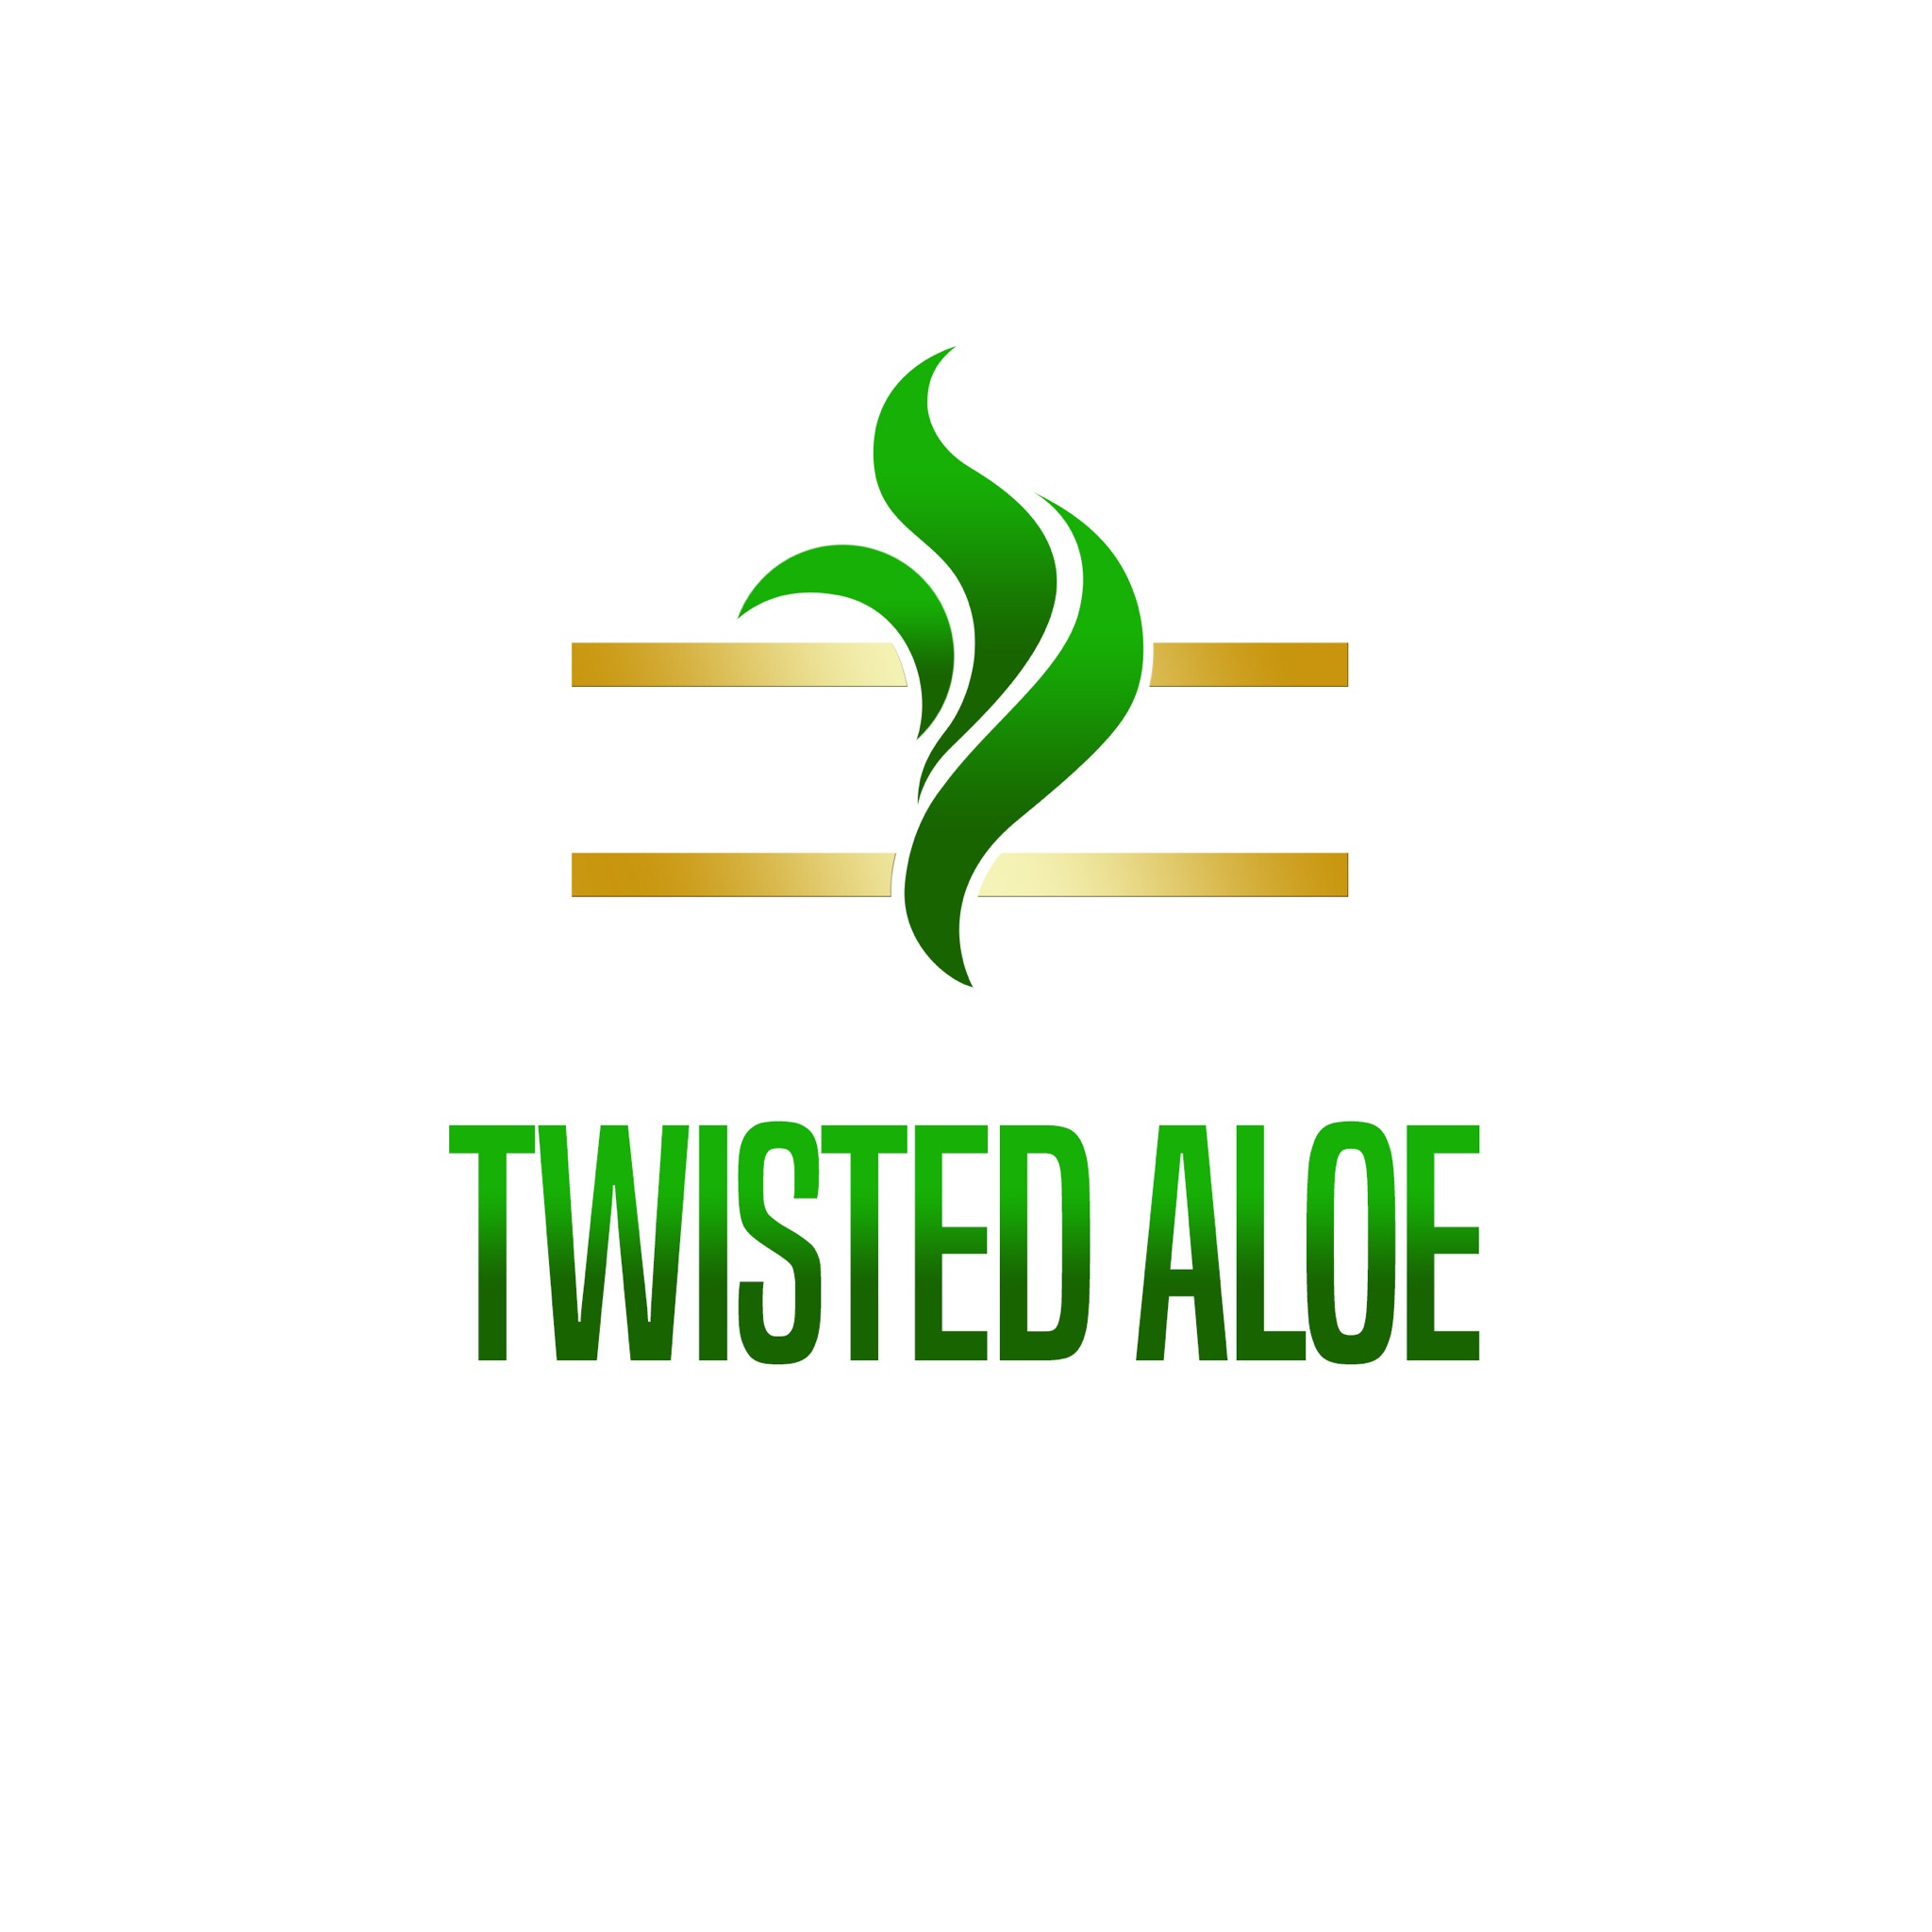 The Twisted Aloe